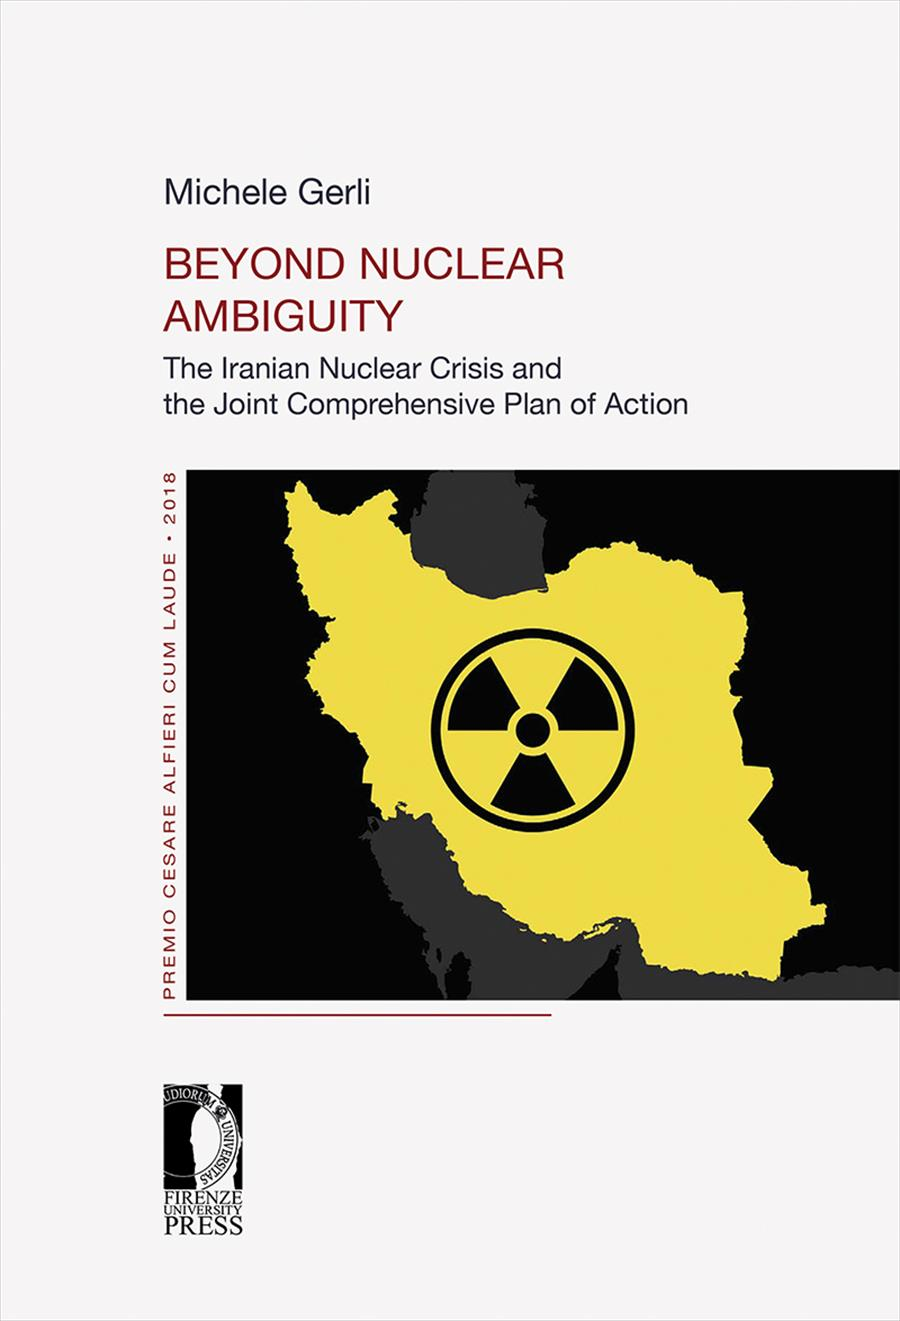 Beyond Nuclear Ambiguity